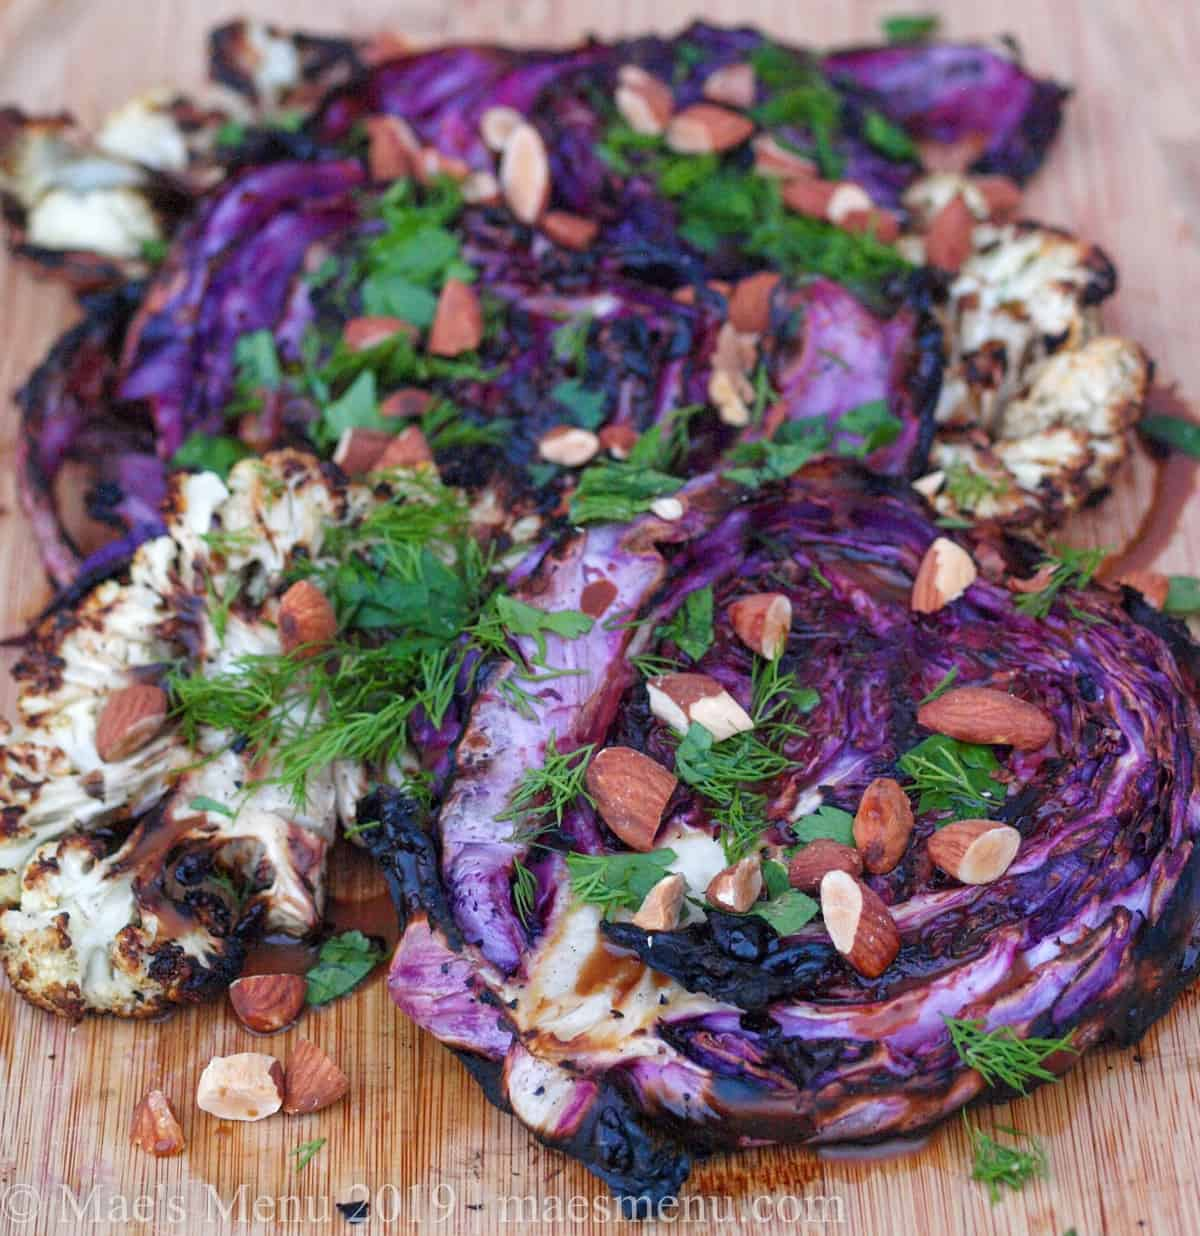 Platter of grilled Cauliflower & Cabbage Salad with miso maple dressing, toasted almonds, and fresh herbs.